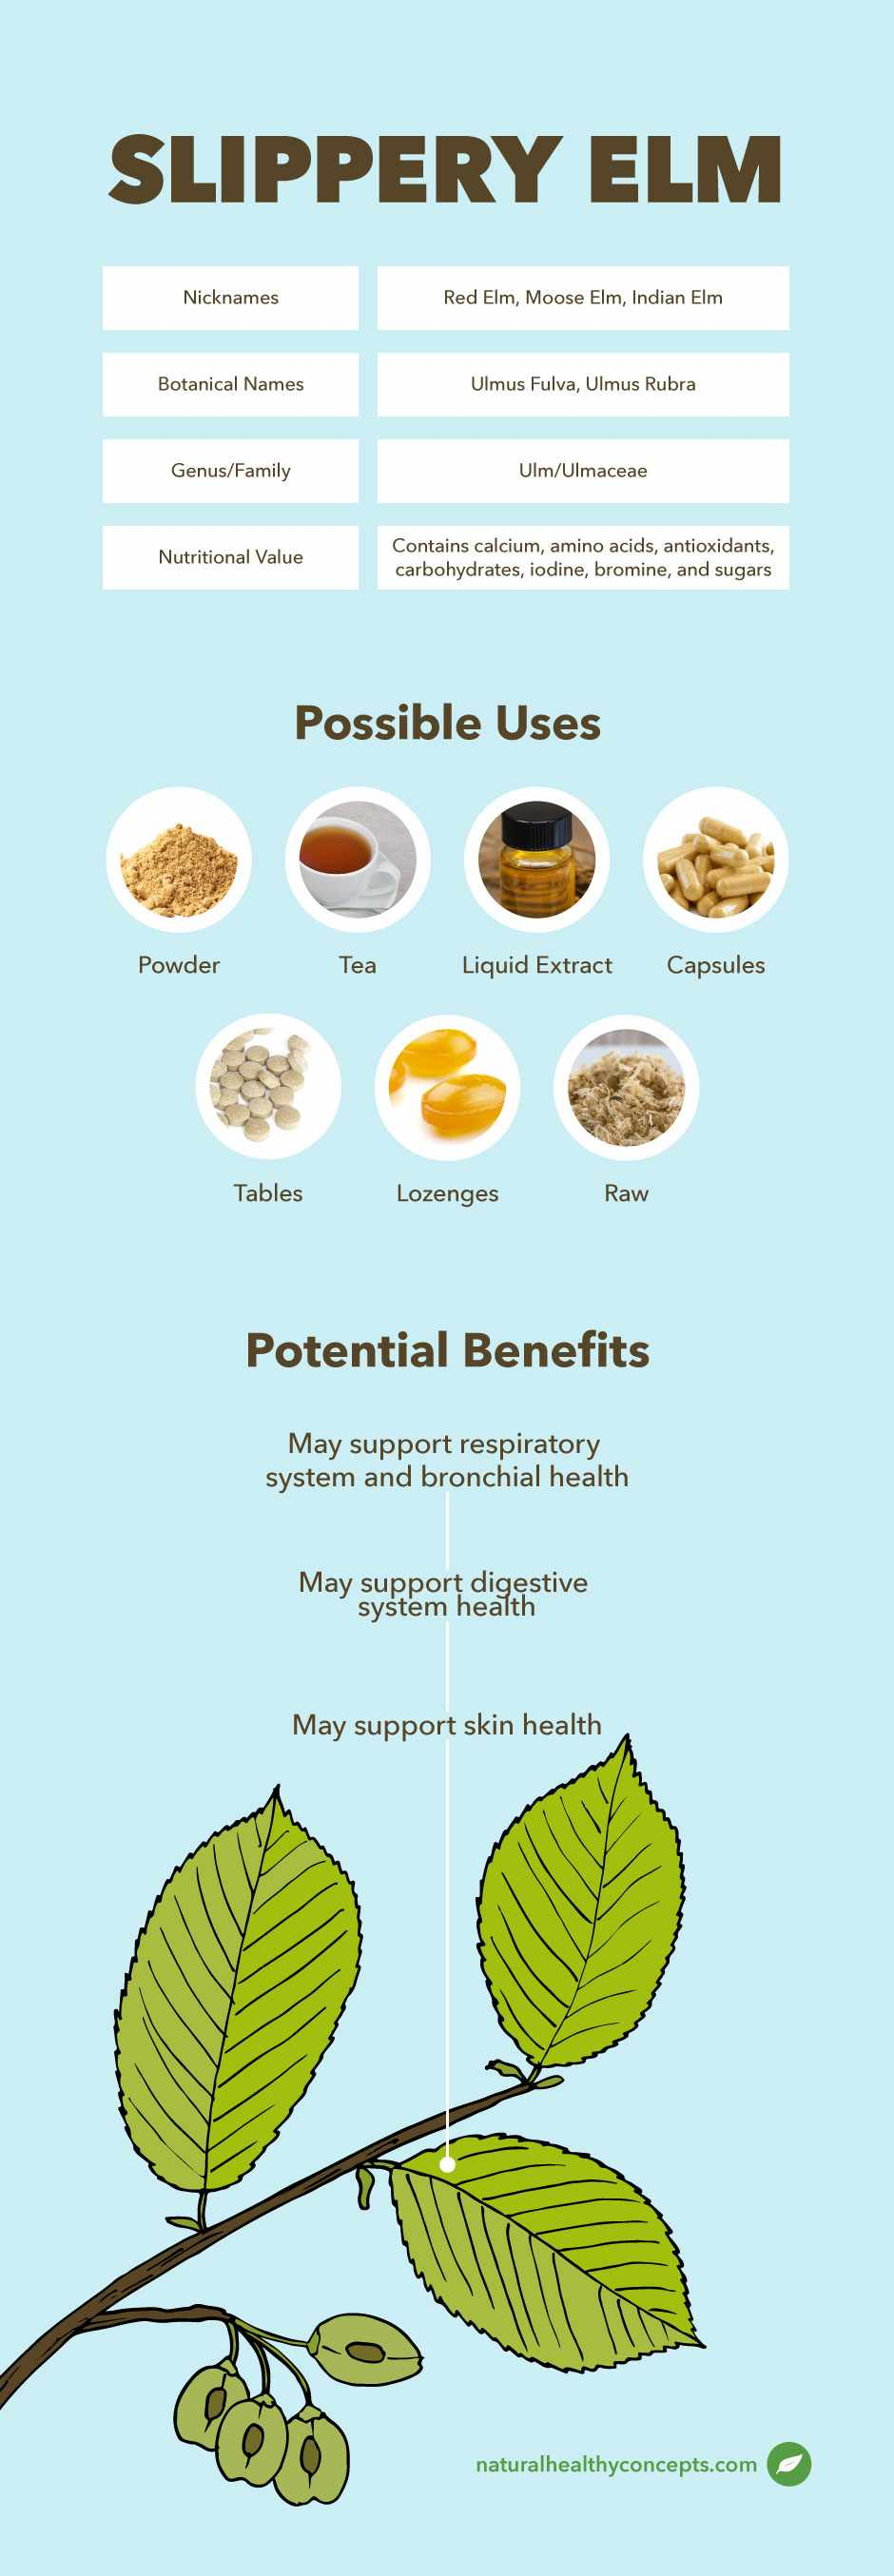 slippery elm infographic